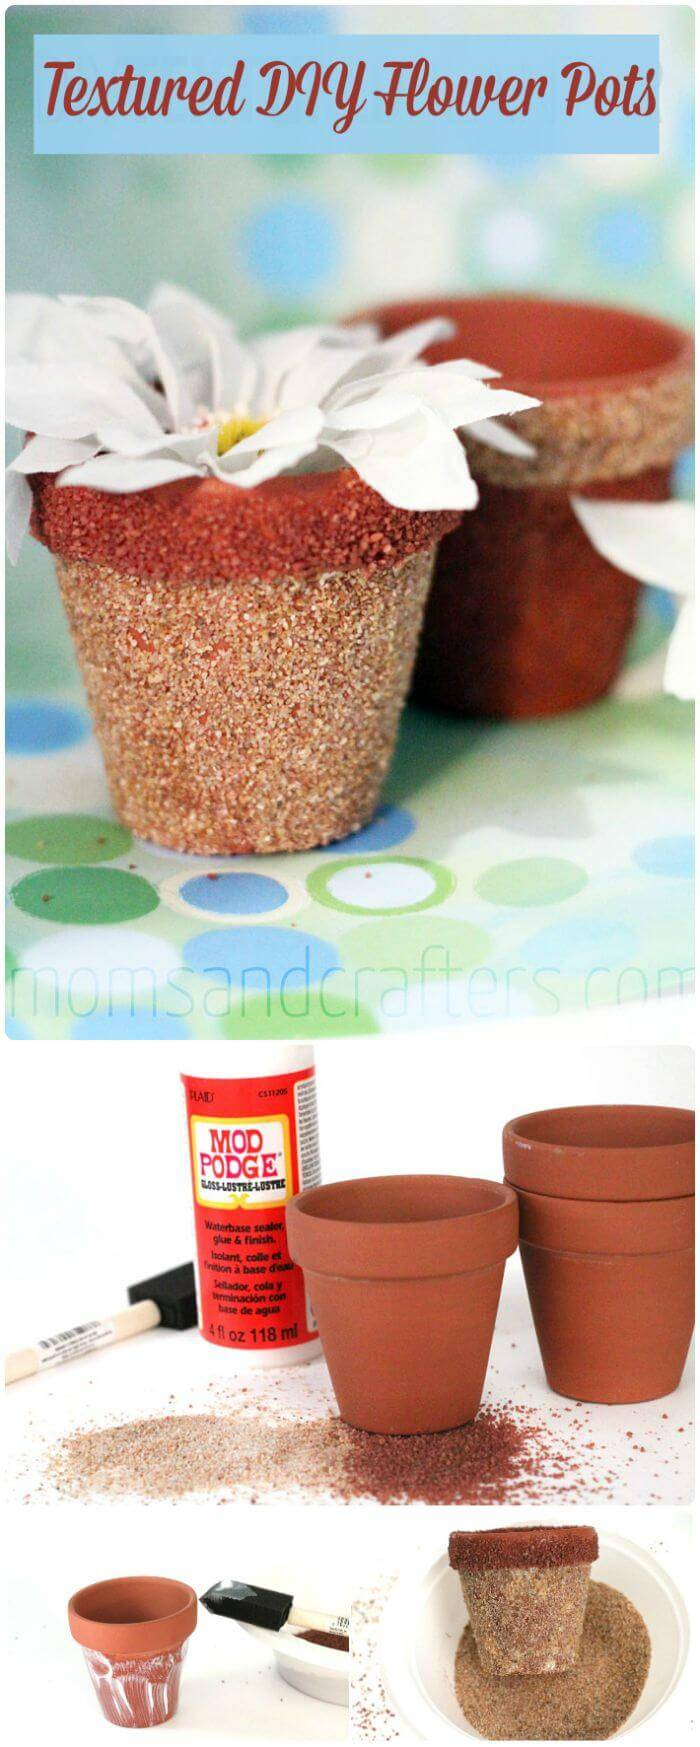 Textured DIY Flower Pots